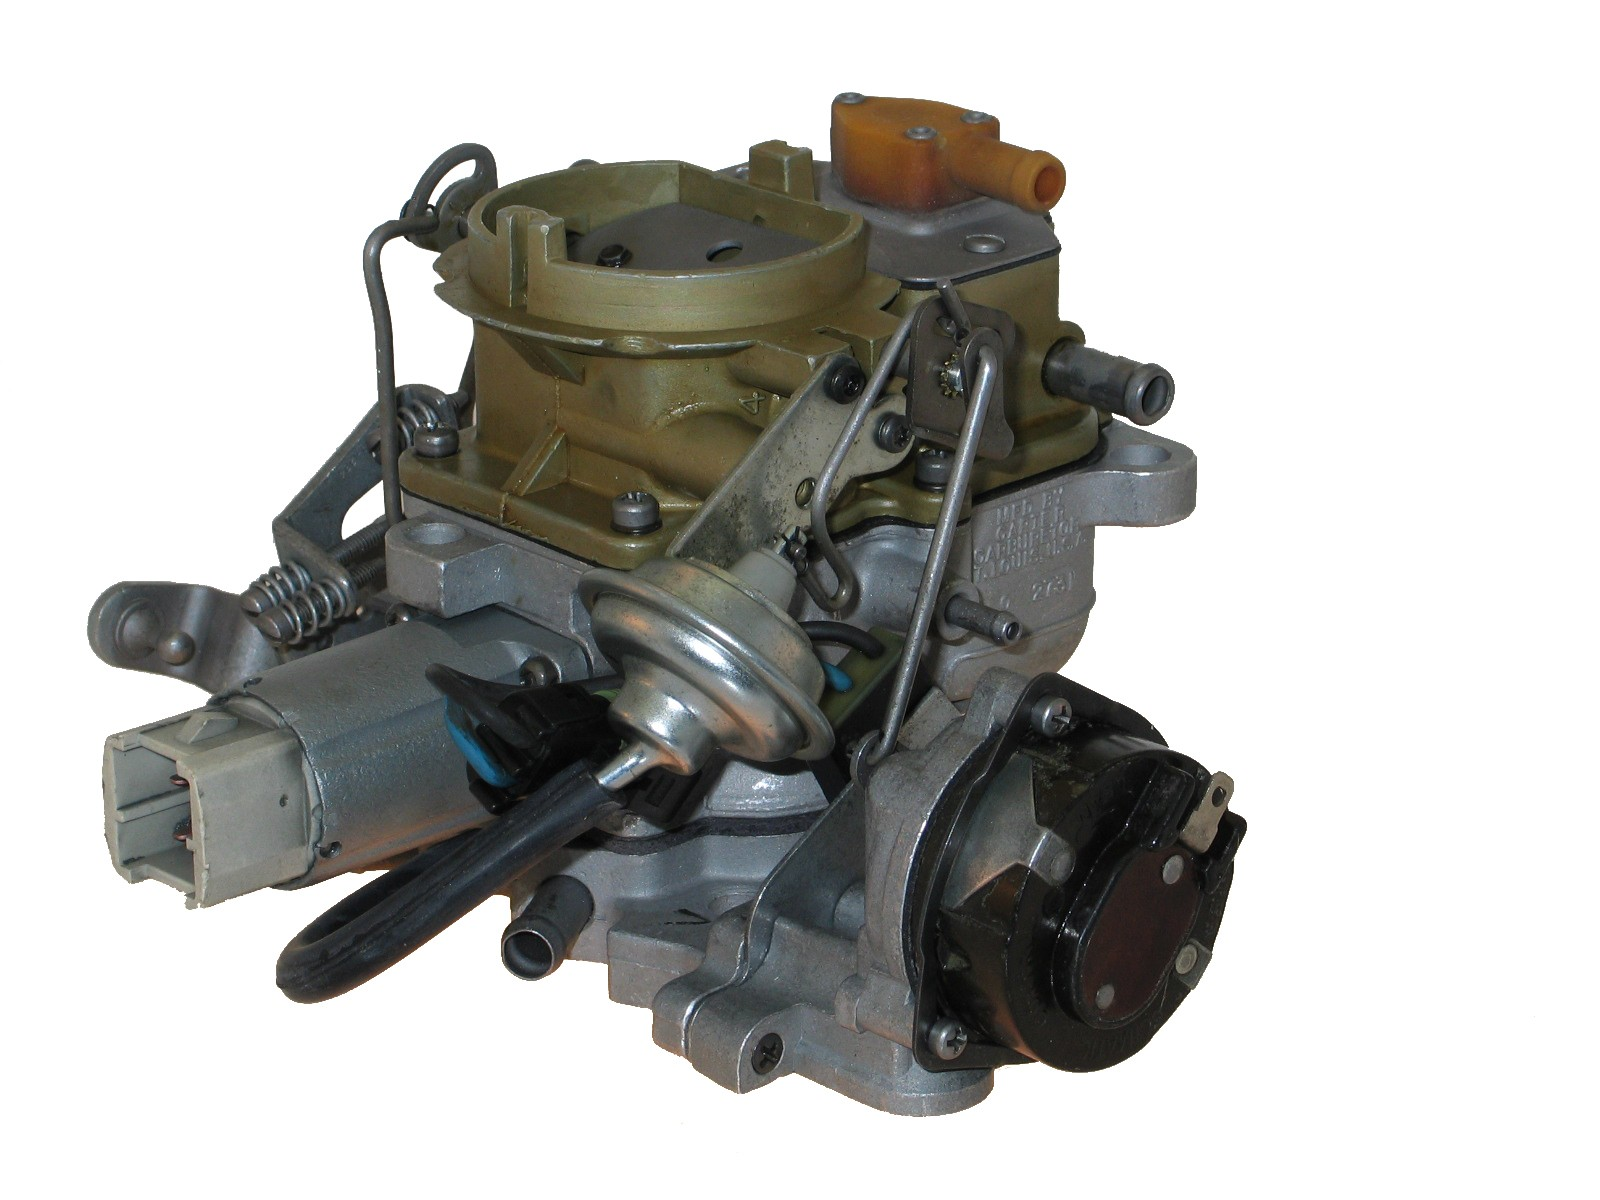 1983 Jeep CJ7 Carburetor Uremco 10-10077